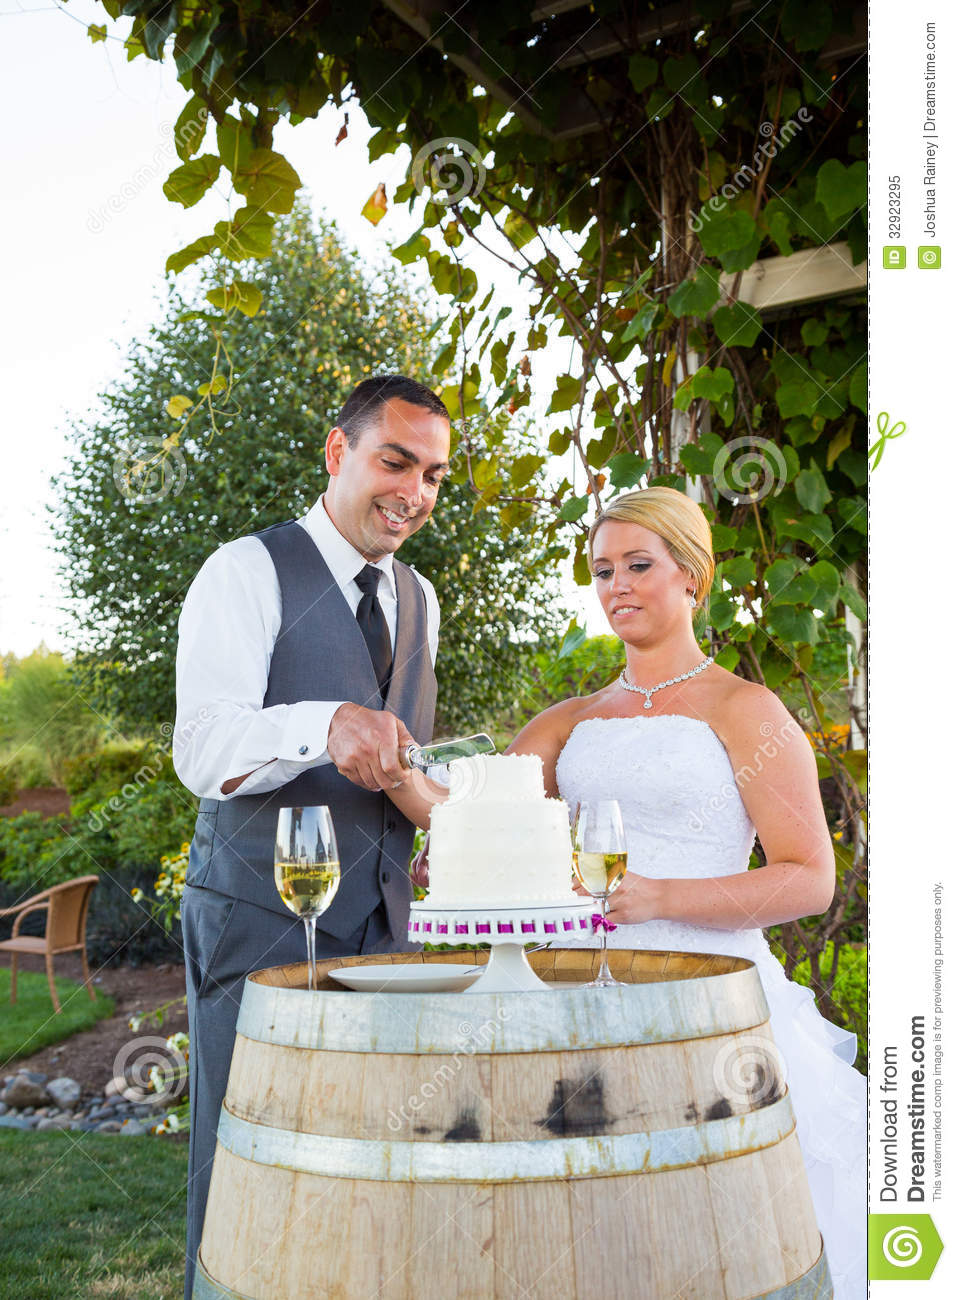 tradition behind cutting the wedding cake and groom cake cutting royalty free stock photo 21219